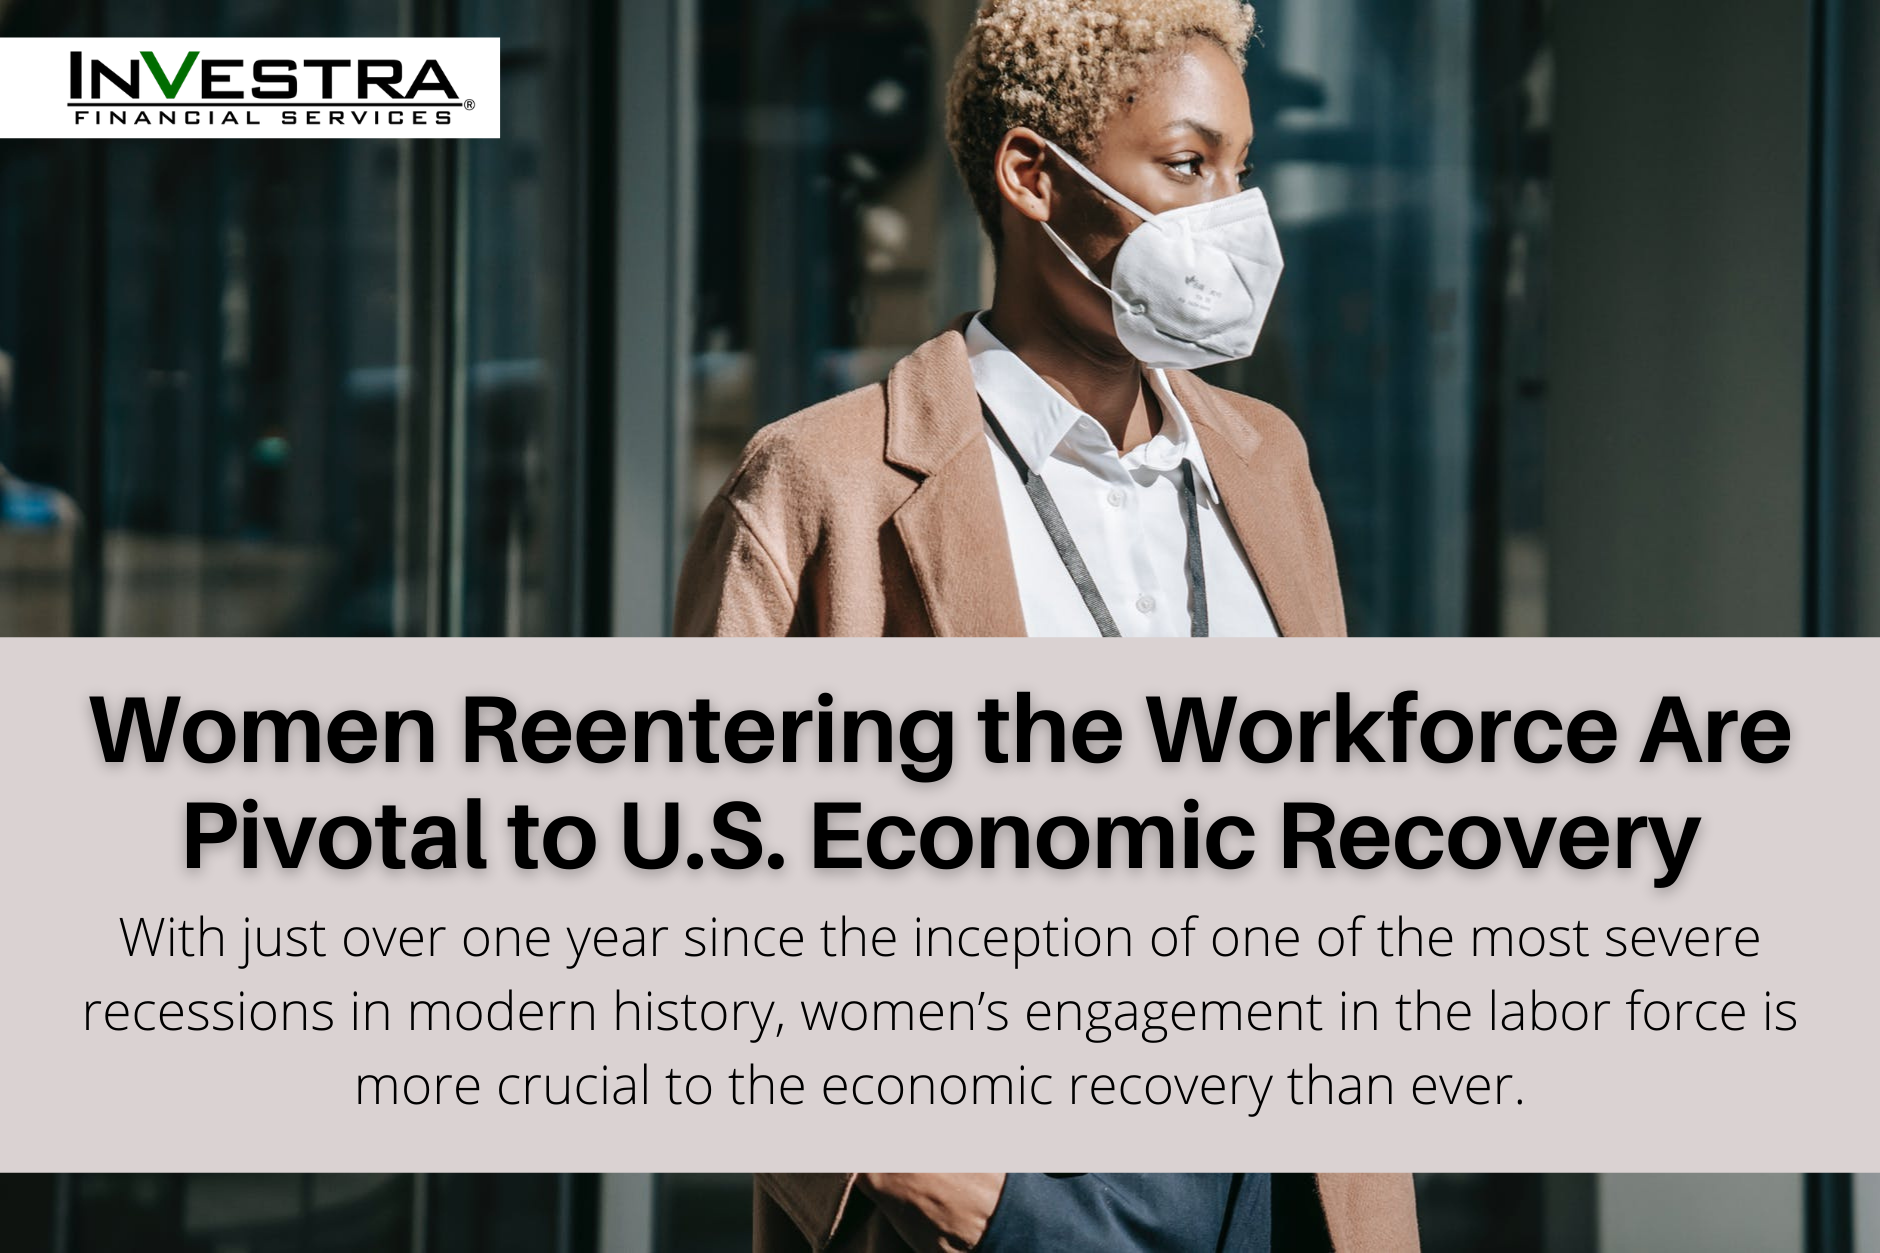 An Employment Priority: Women Reentering the Workforce Are Pivotal to U.S. Economic Recovery